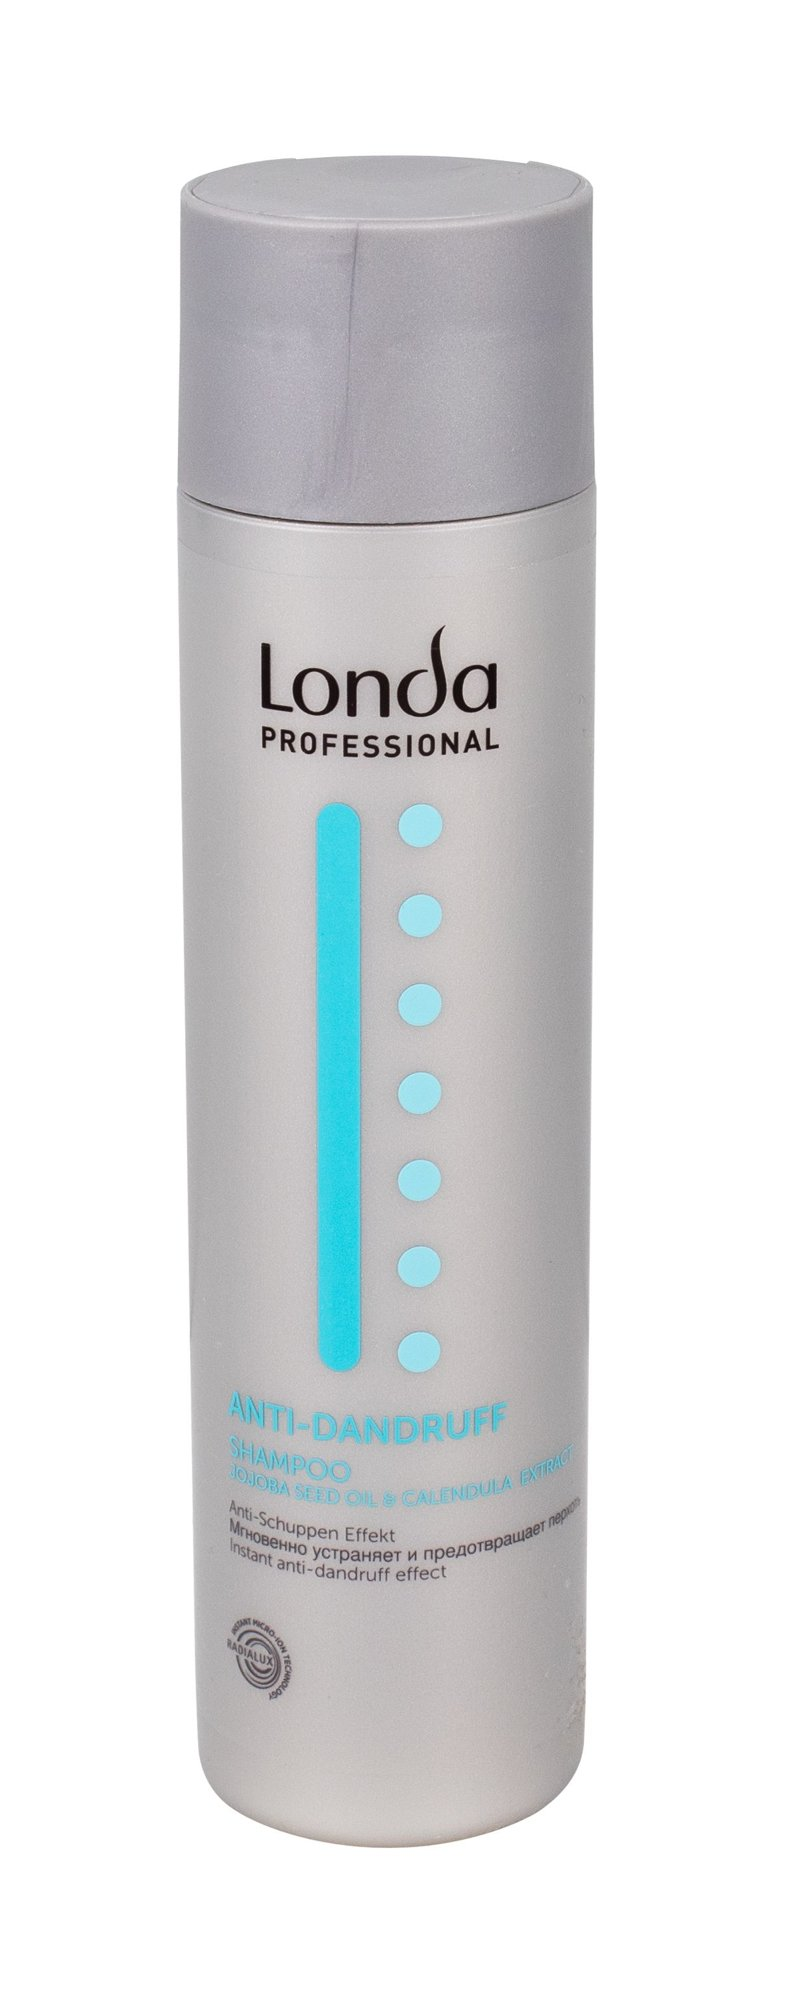 Londa Professional Scalp Cosmetic 250ml  Anti-Dandruff